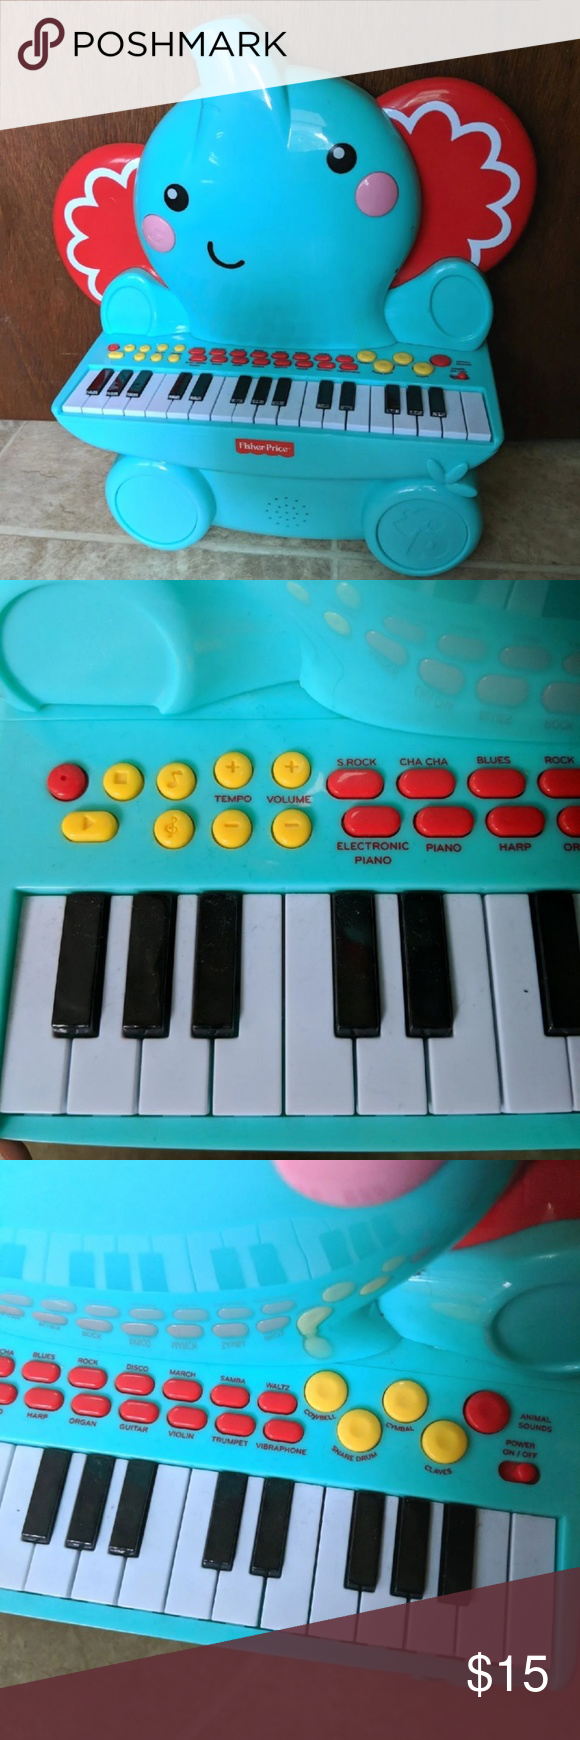 Fisher Price Keyboard Hardly ever played with, we just have something else simil...